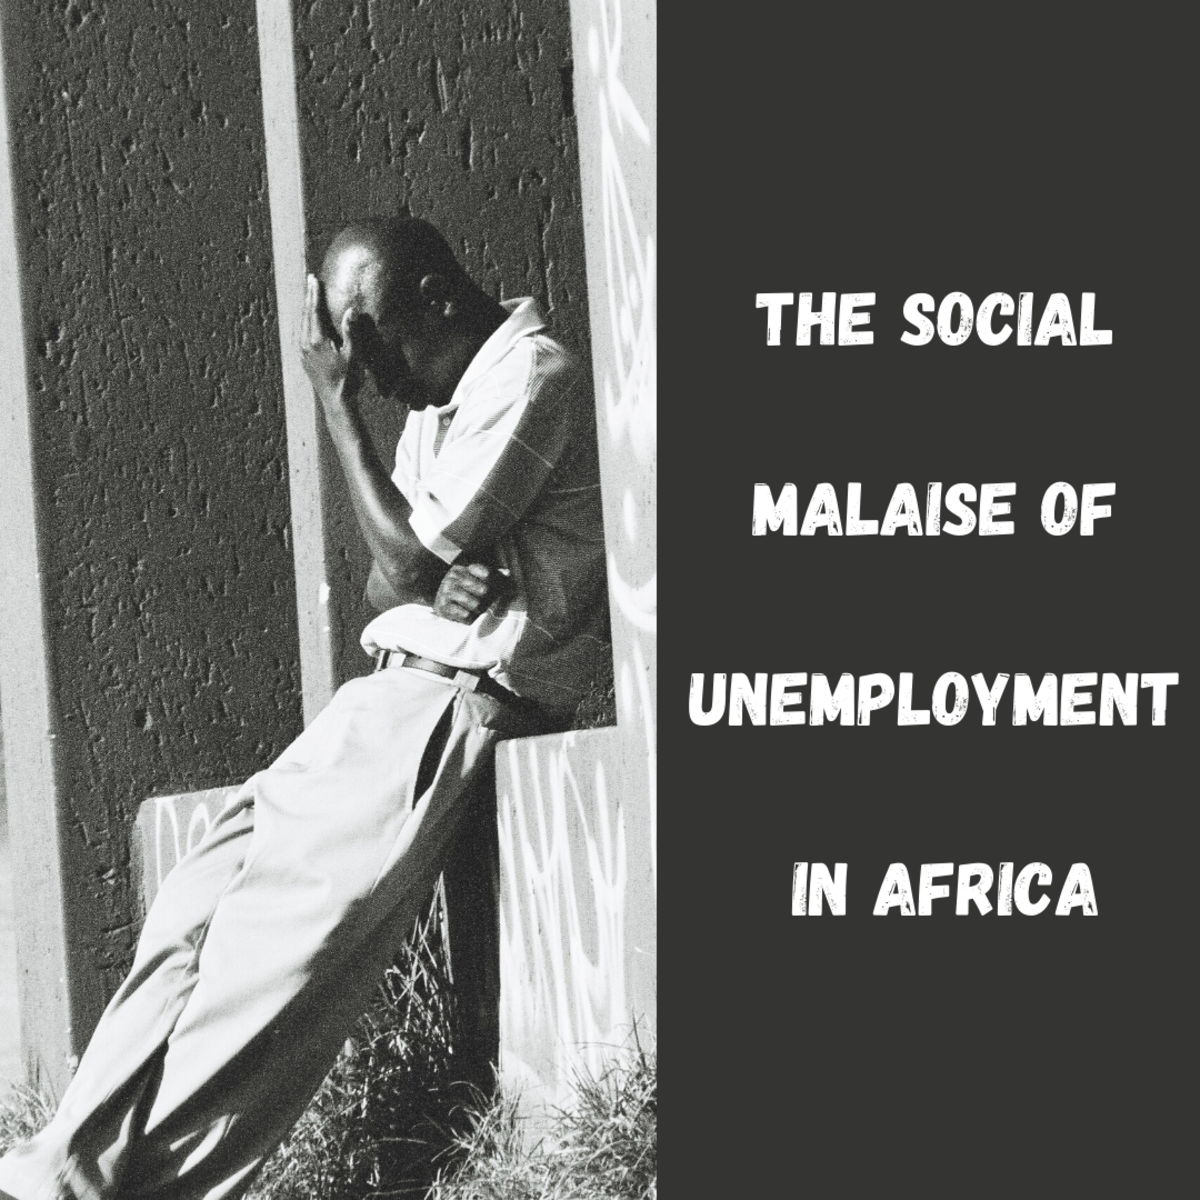 This article will explore how youth unemployment in Africa results in political instability.